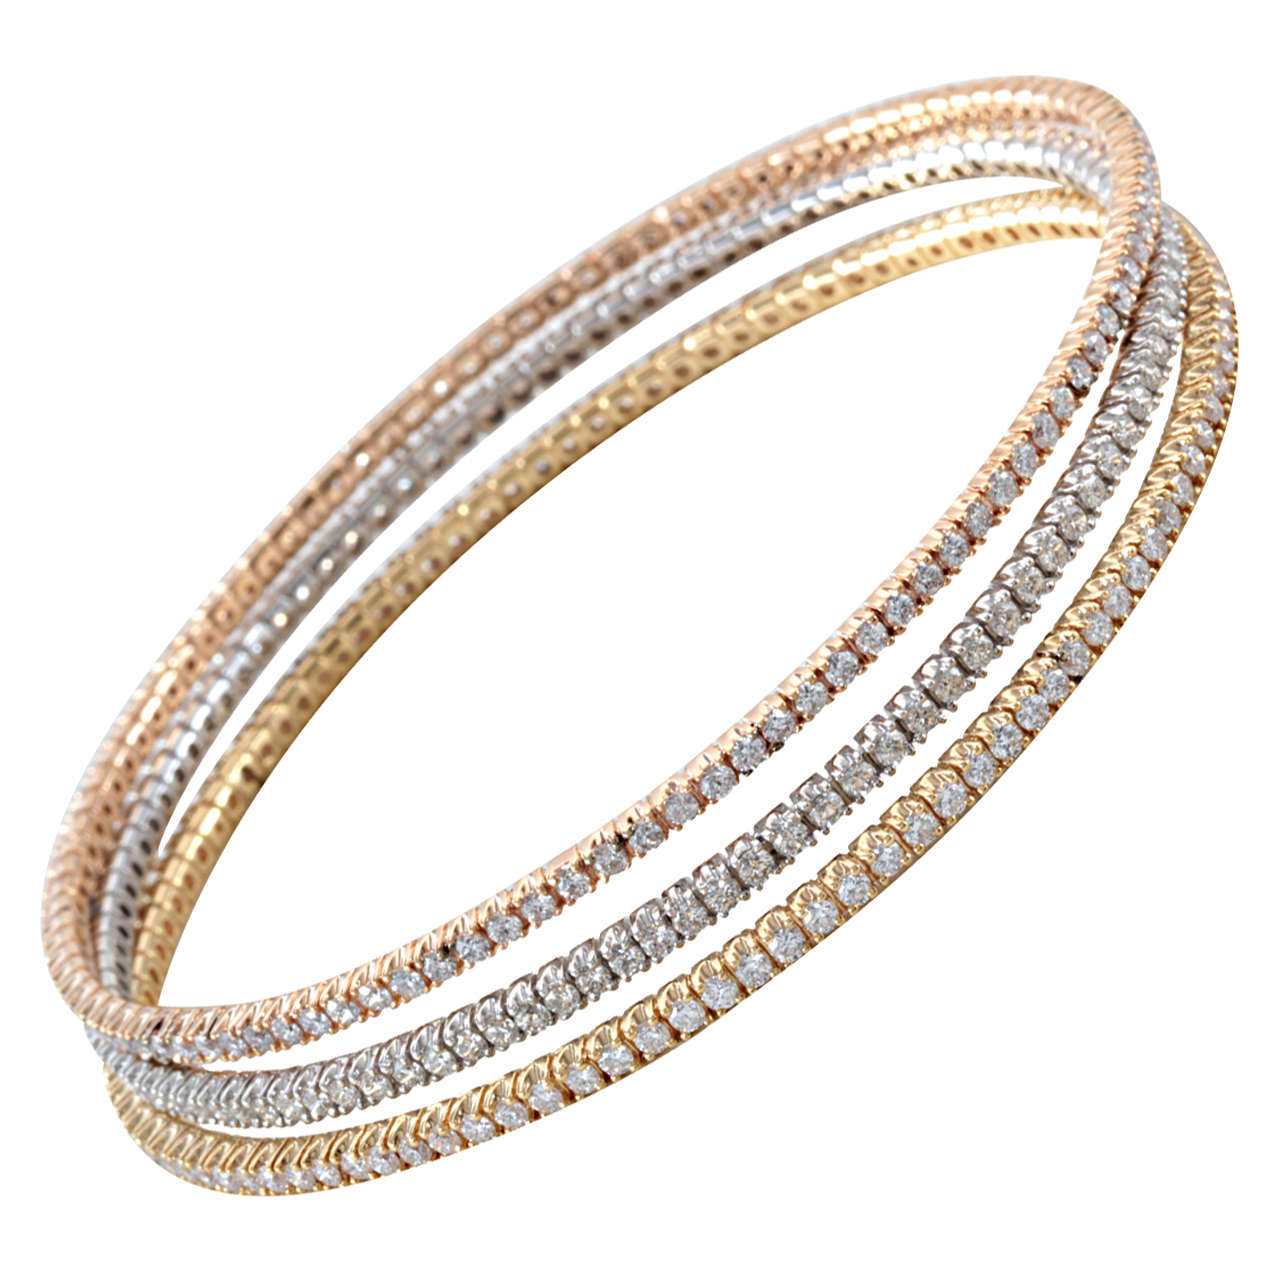 diamond move messika medium bangle joaillerie bracelet pave bangles